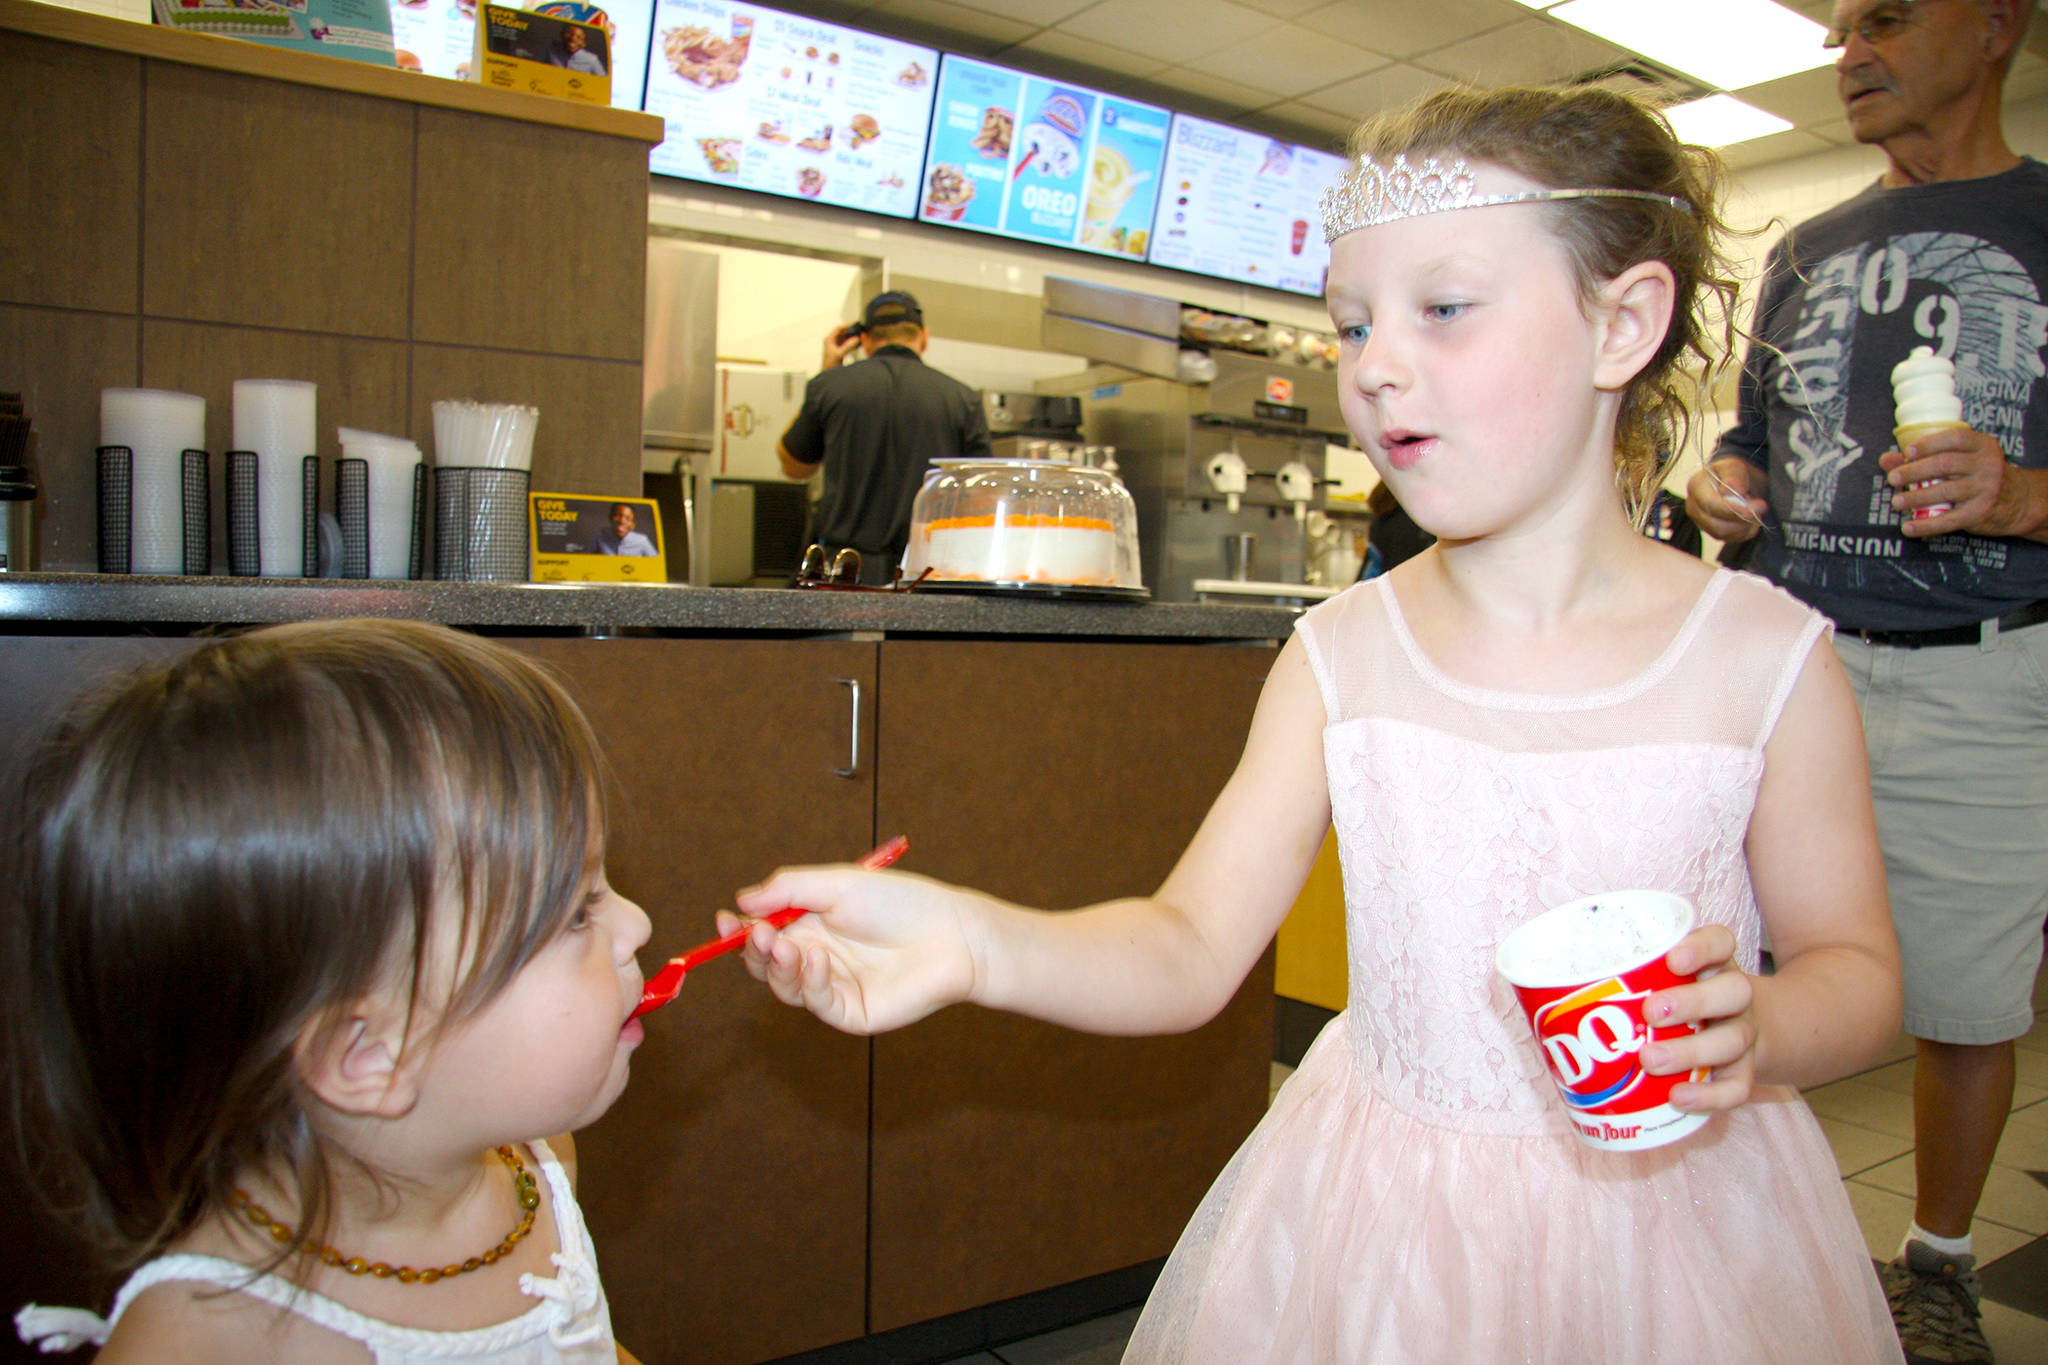 Six-year-old 'Princess' Finnley Bennett shares her Blizzard with two-year-old sister Reylie Thursday during Miracle Treat Day at Dairy Queen. Visit vernonmorningstar.com for more photos and a video on the special day, raising funds for B.C. Children's Hospital. (Jennifer Smith/Morning Star)